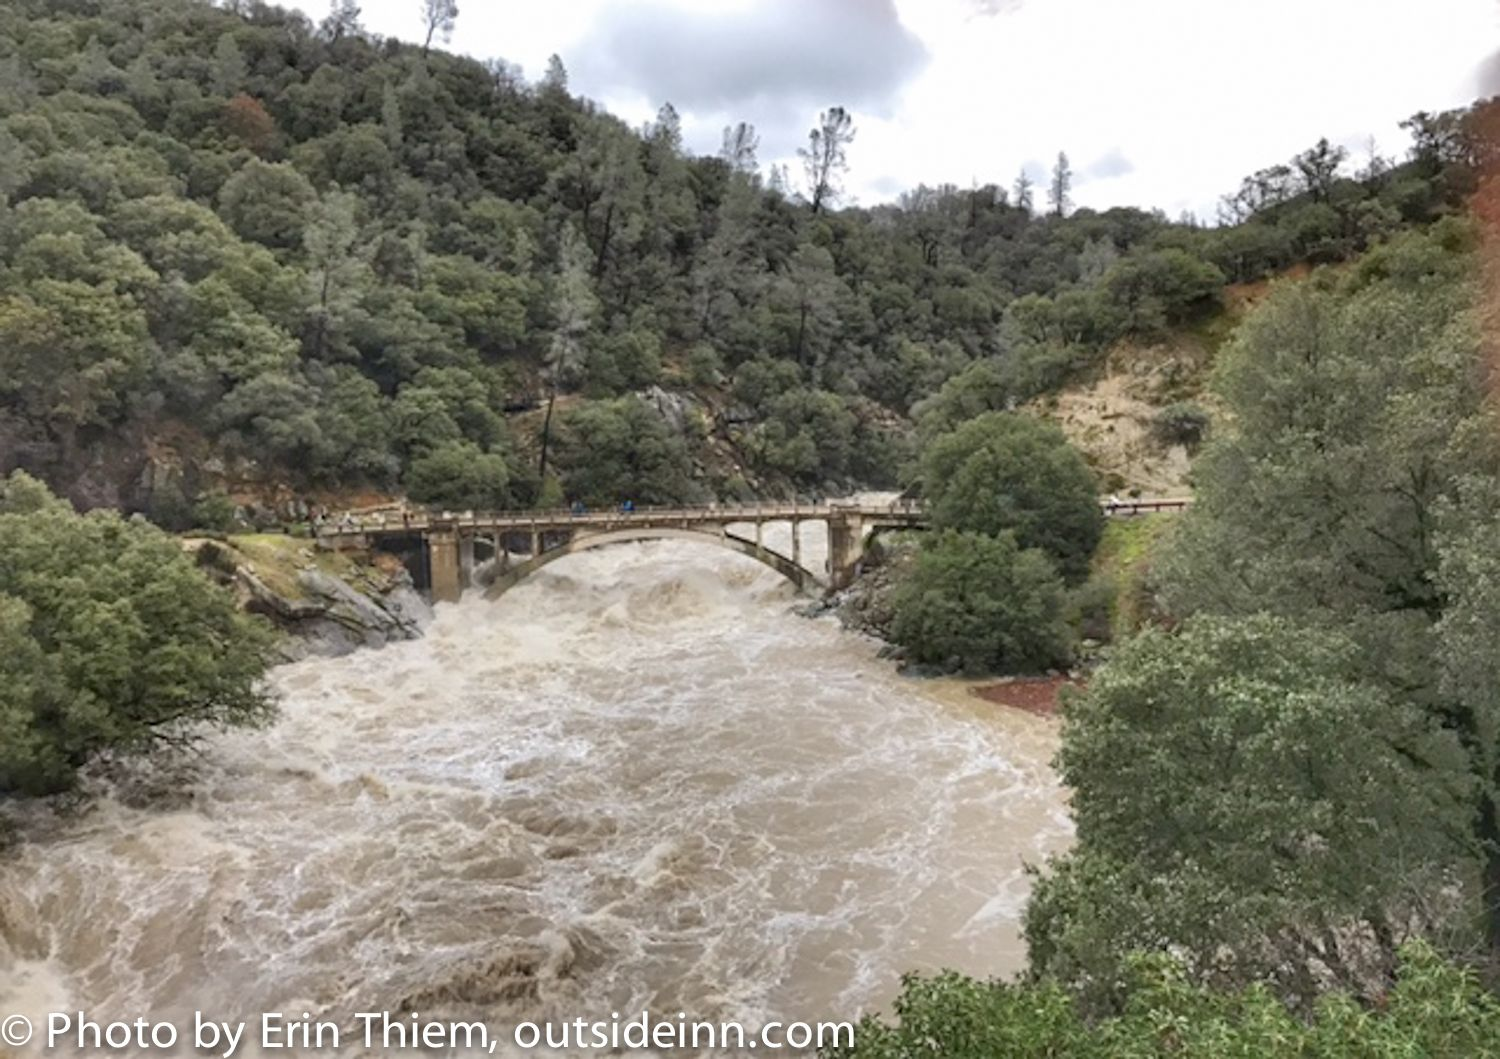 High Water At The South Yuba River Be Careful With These Winter Weather Conditions Nevada City Nevada City California Visit Nevada